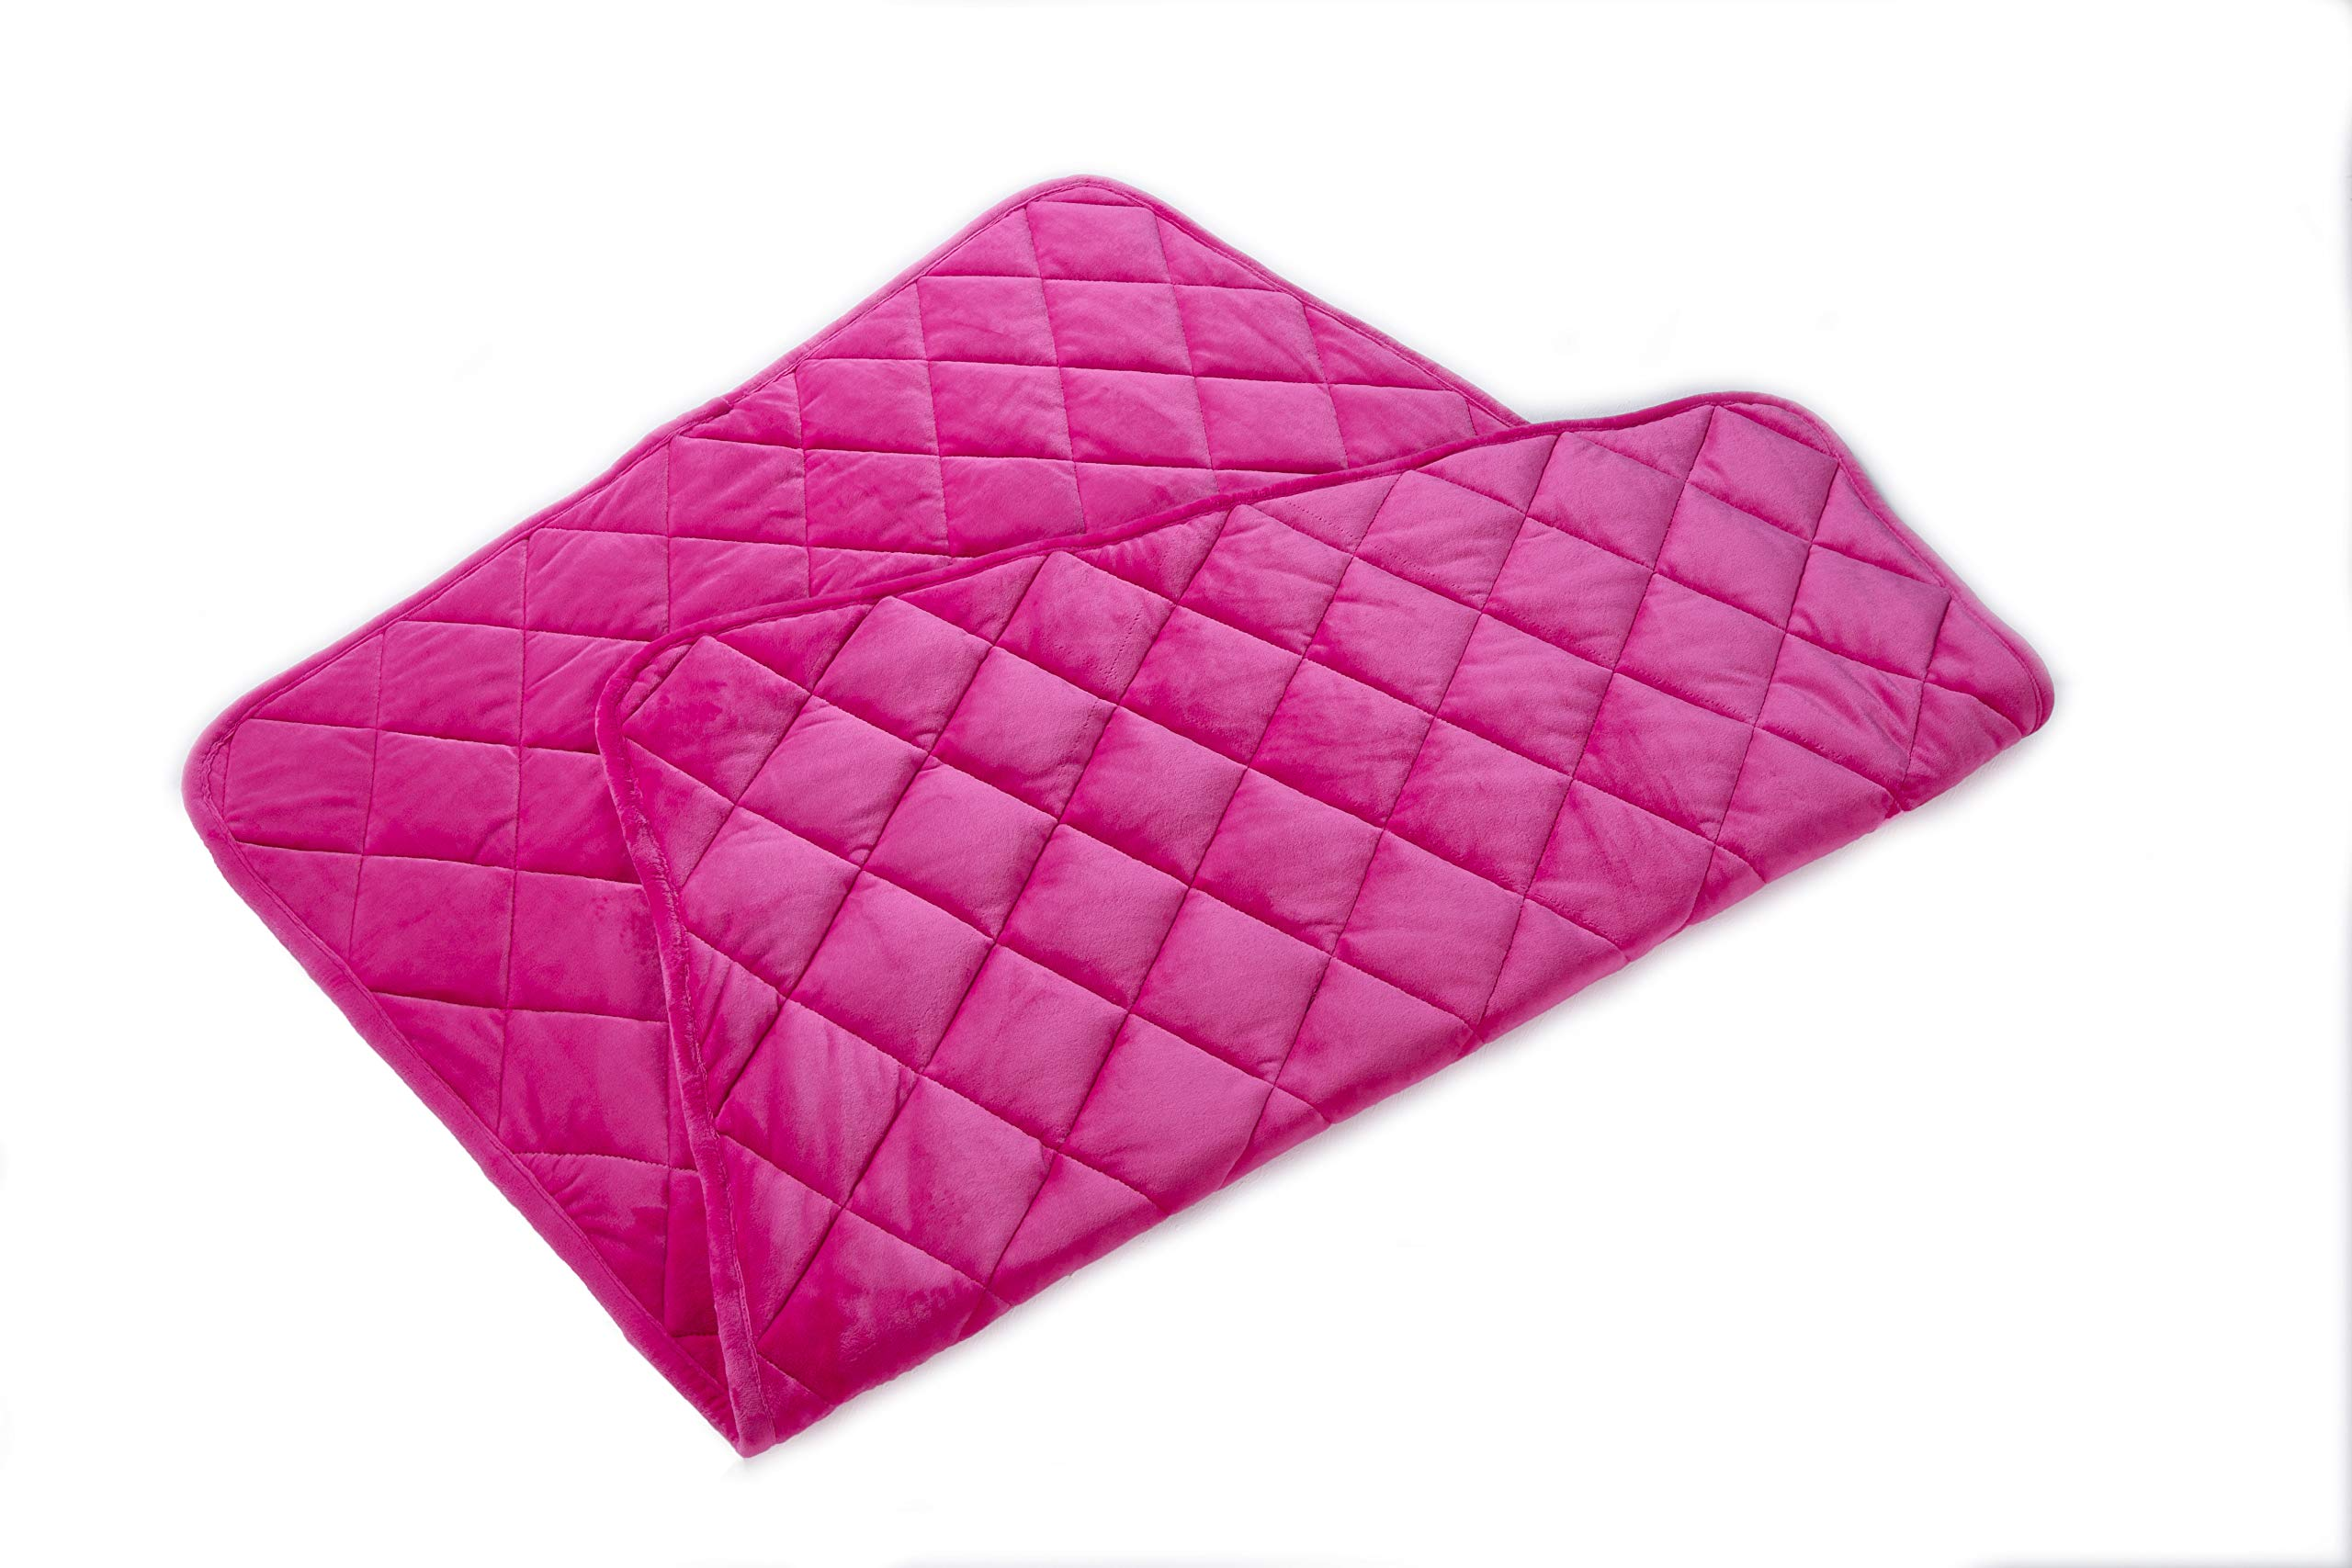 Finslep Minky Weighted Blankets | One Piece Design | Travel Blanket | Air Conditioner Duvet | Kid's&Toddler Blanket | Good for A Better Sleep | Easy Clean | Glass Beads(Pink, 36'' x 48'' 3 lbs)